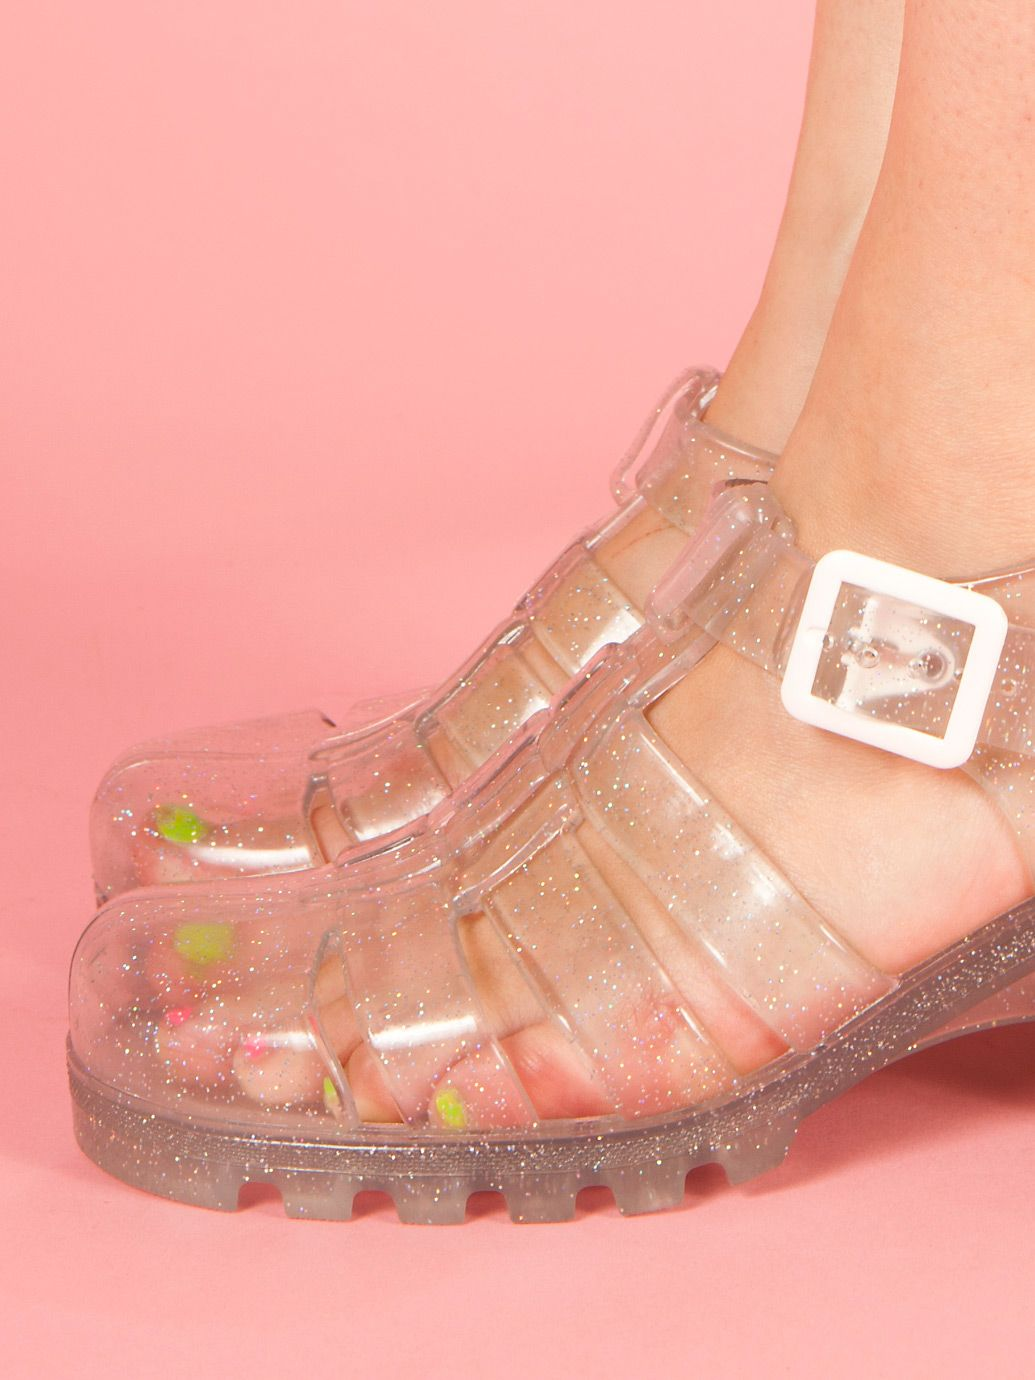 d01470c278 Juju Babe Jelly Sandals from American Apparel. | Jelly Sandals ...